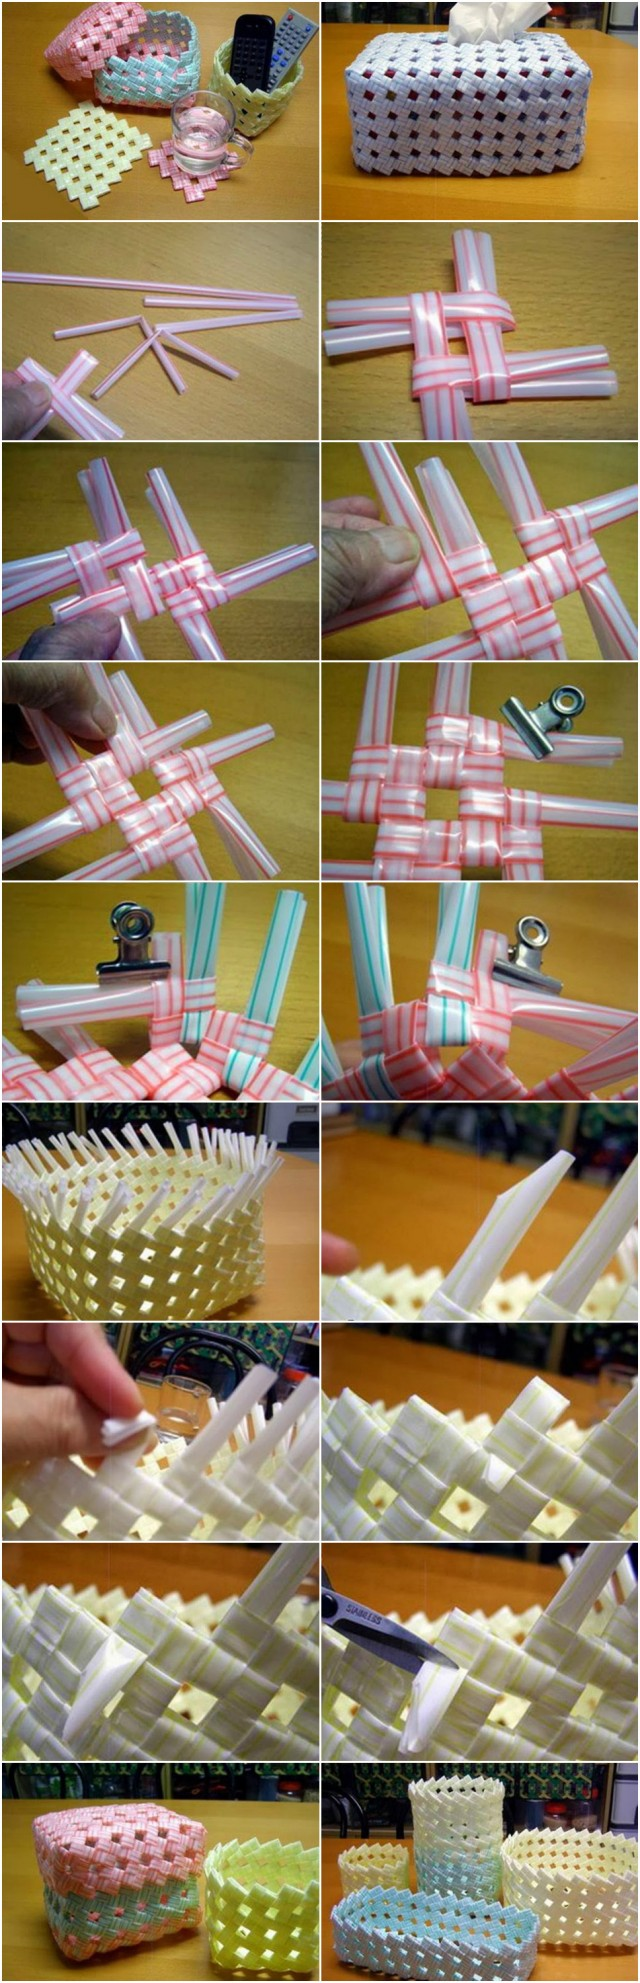 How To Make Woven Straw Storage Baskets 2